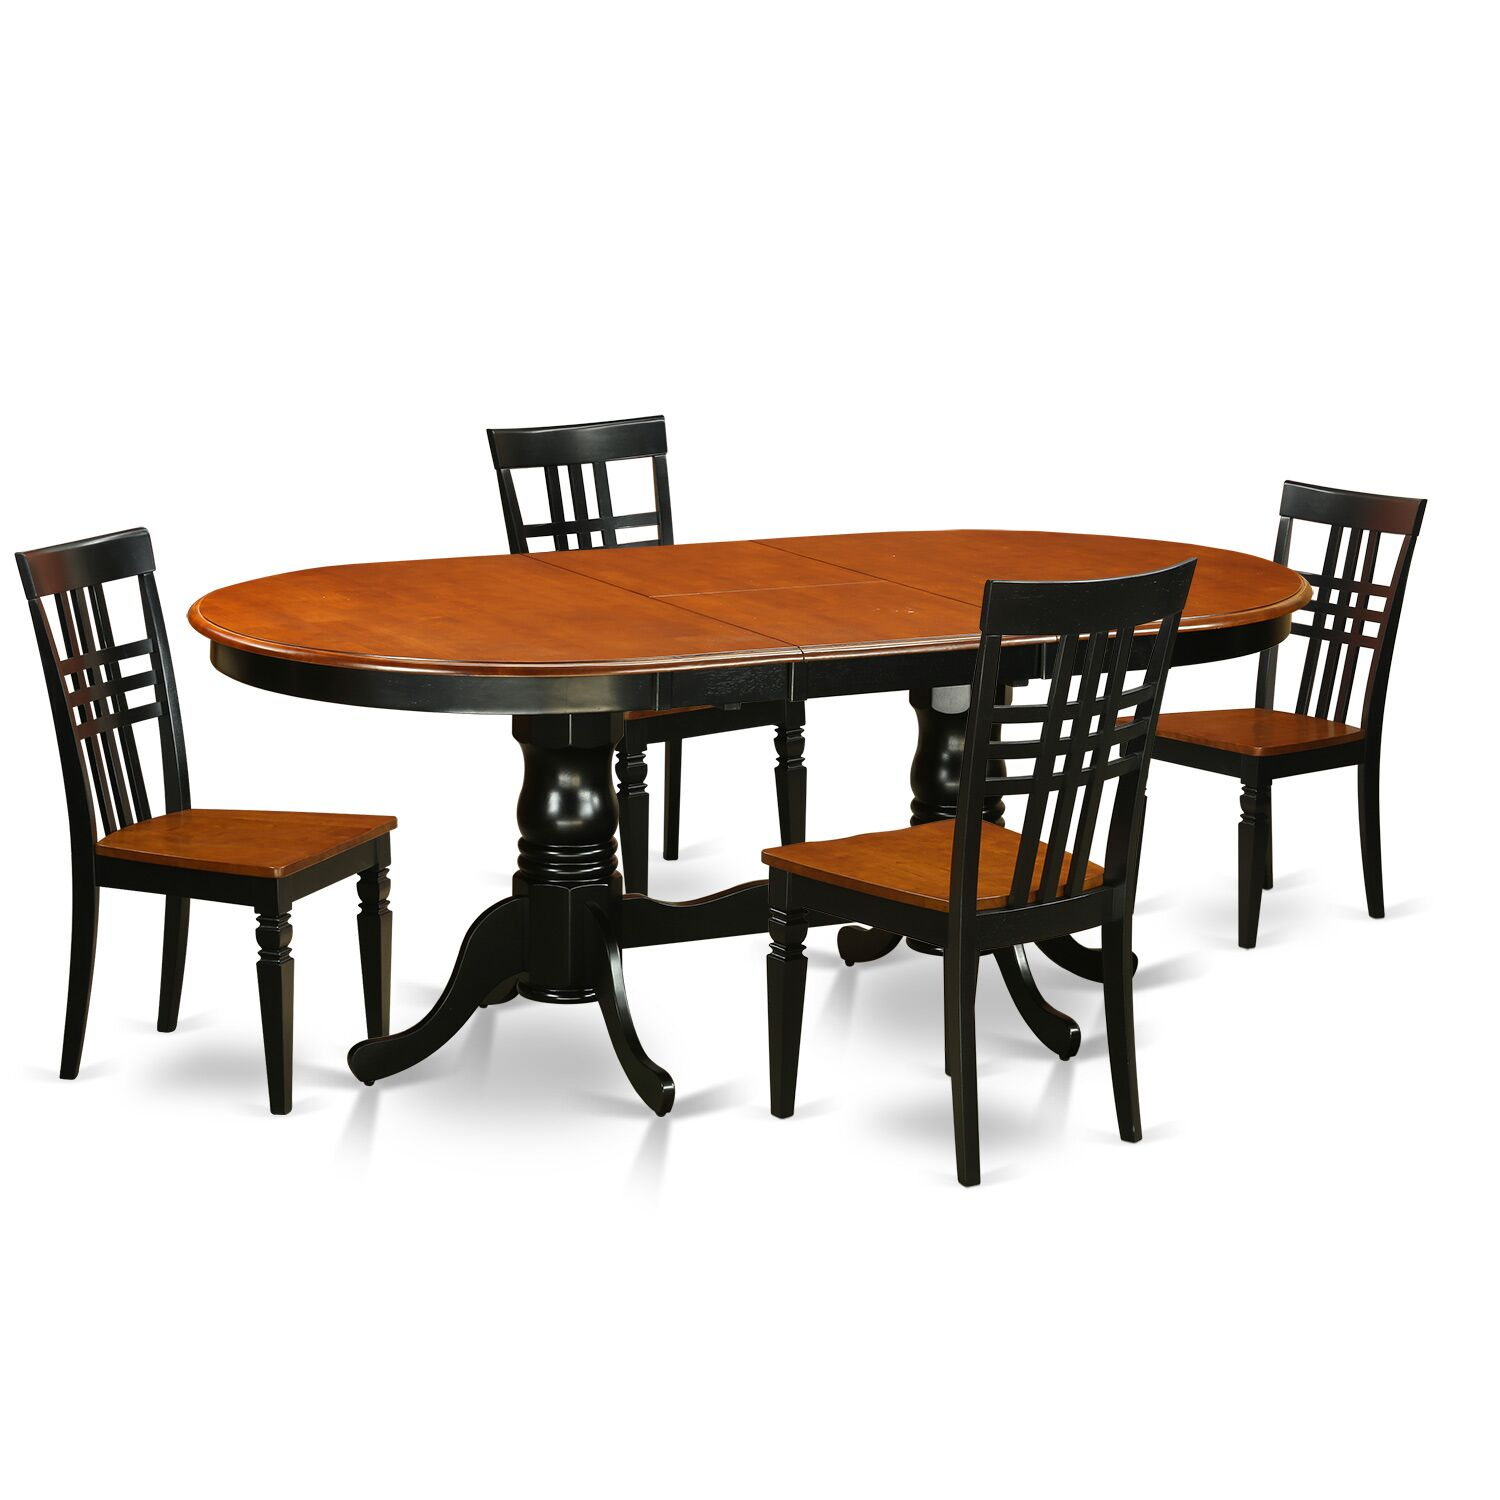 5 Piece Dining Set Chair Finish: Black